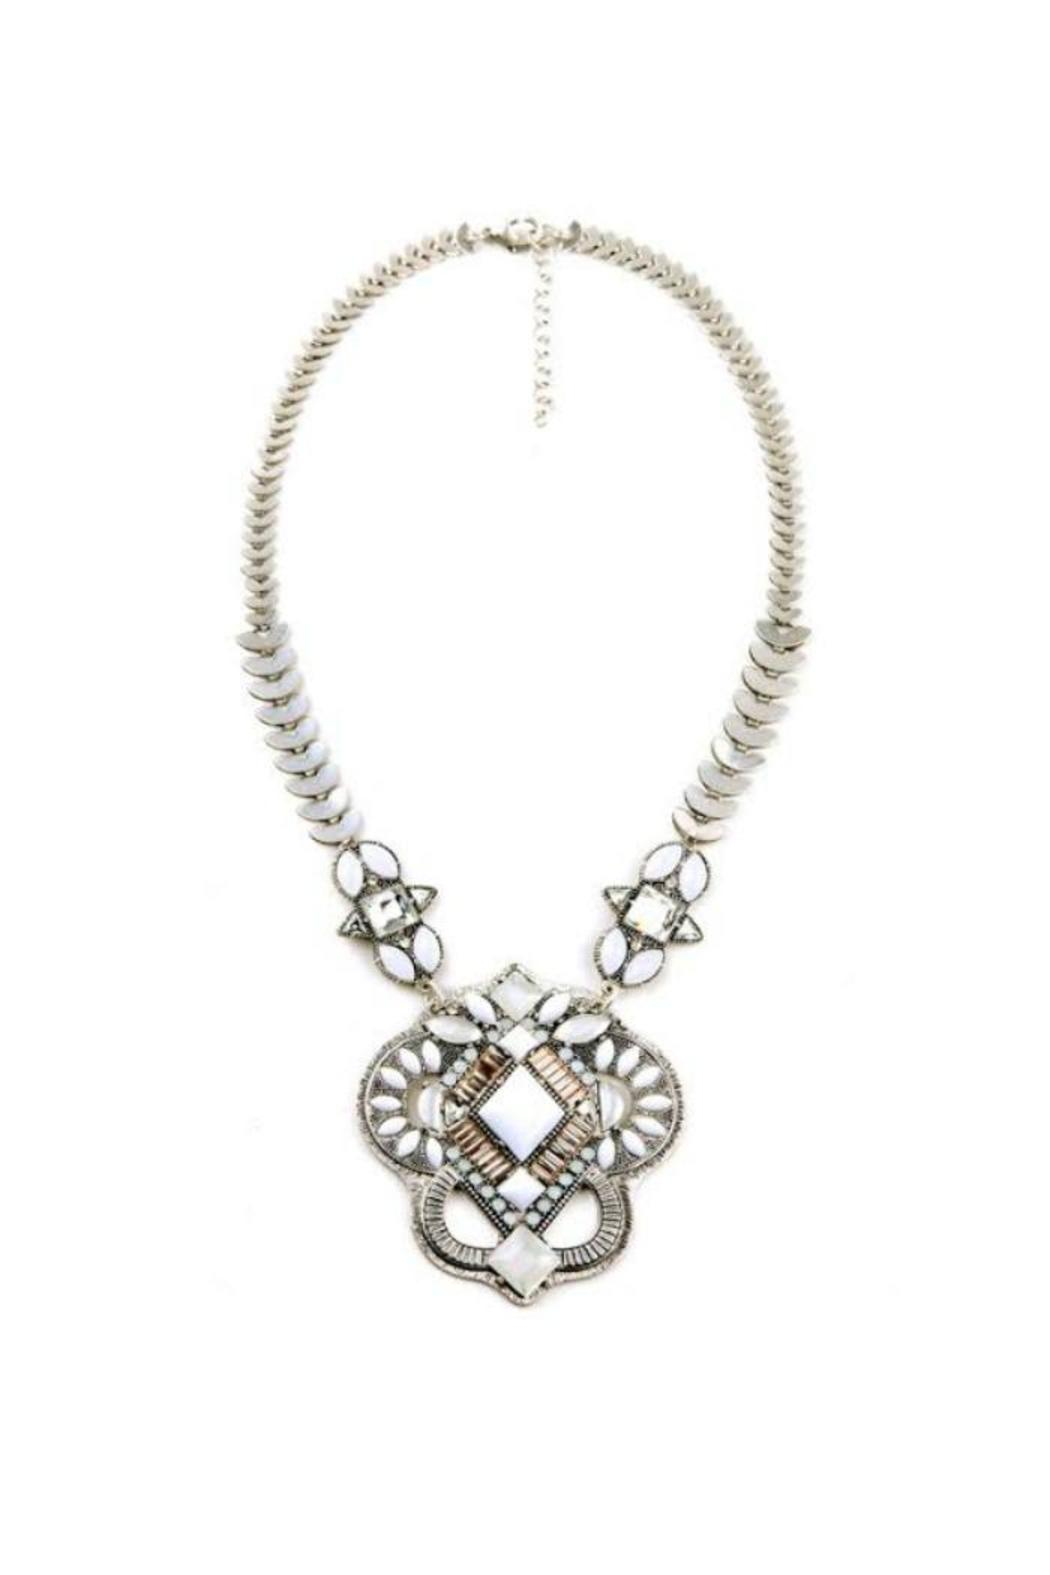 Beautysis White Stone Necklace From Indiana By Colokial